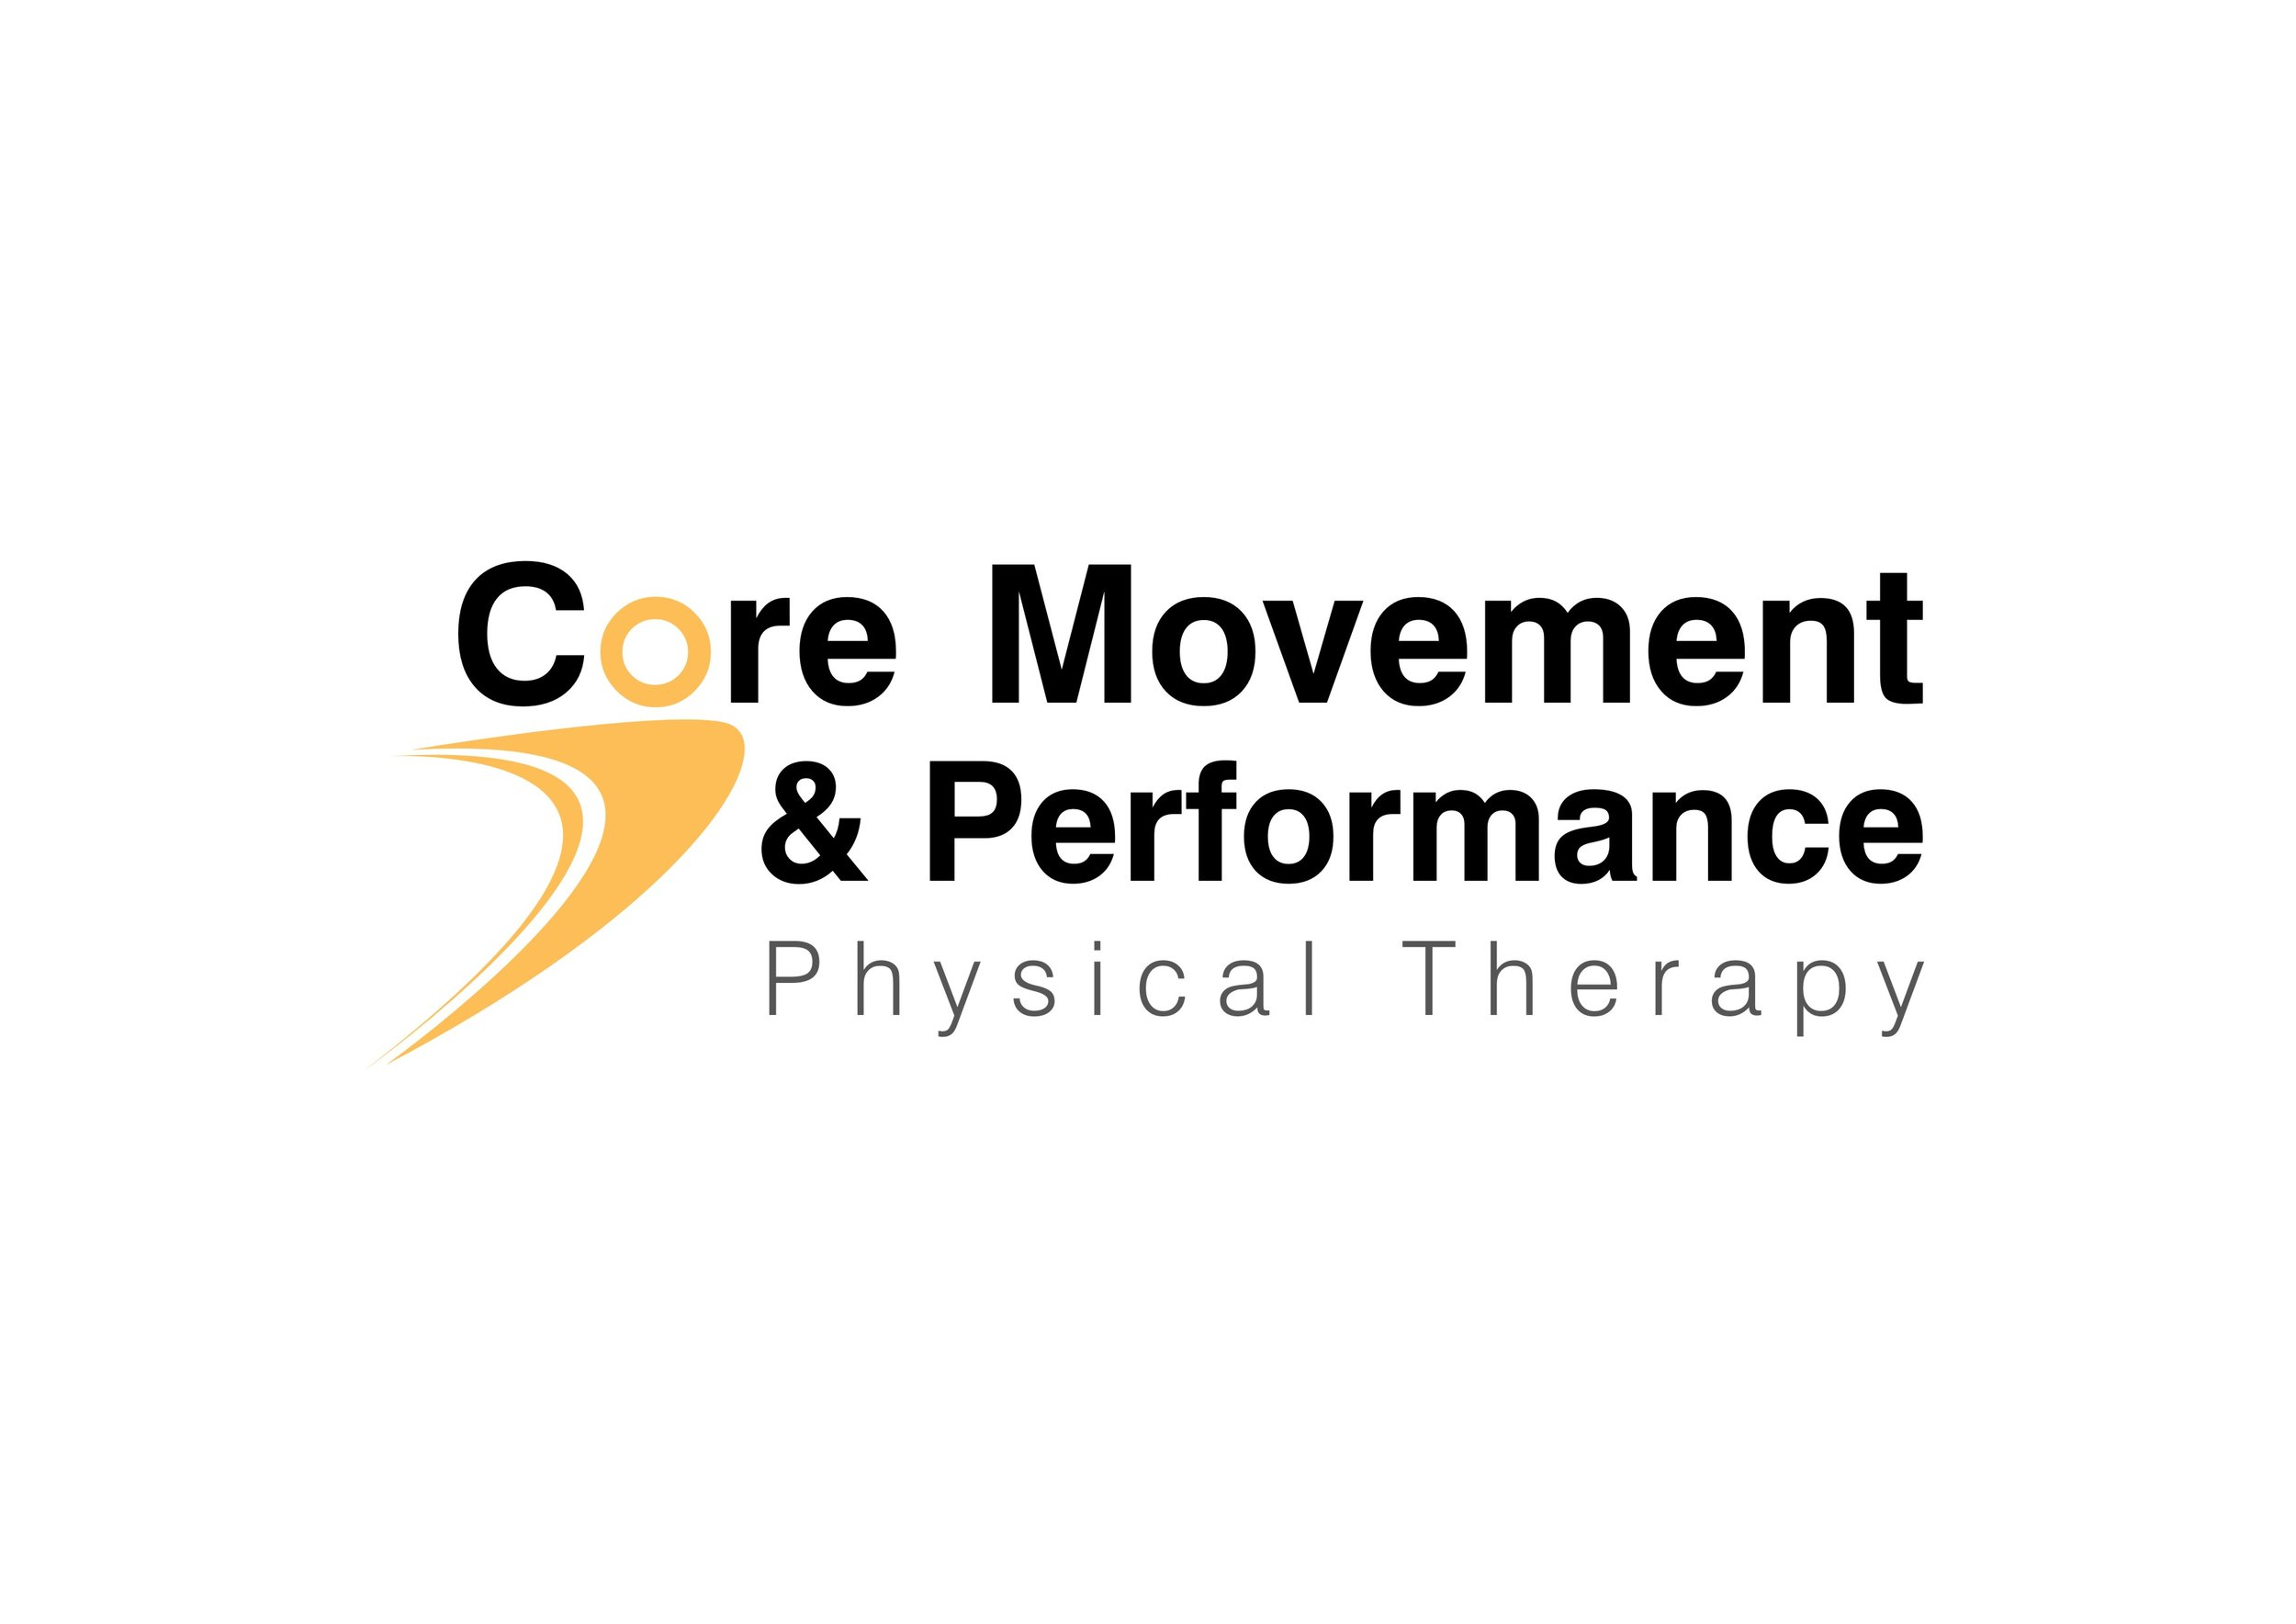 Private Training - When I'm not galavanting around the internet, I'm working with clients in Waltham, Massachusetts.Please note that I'm not a Physical Therapist, but I do work closely with Karen Liu DPT in determining what's best for our clients.Check out my schedule to book a session below!